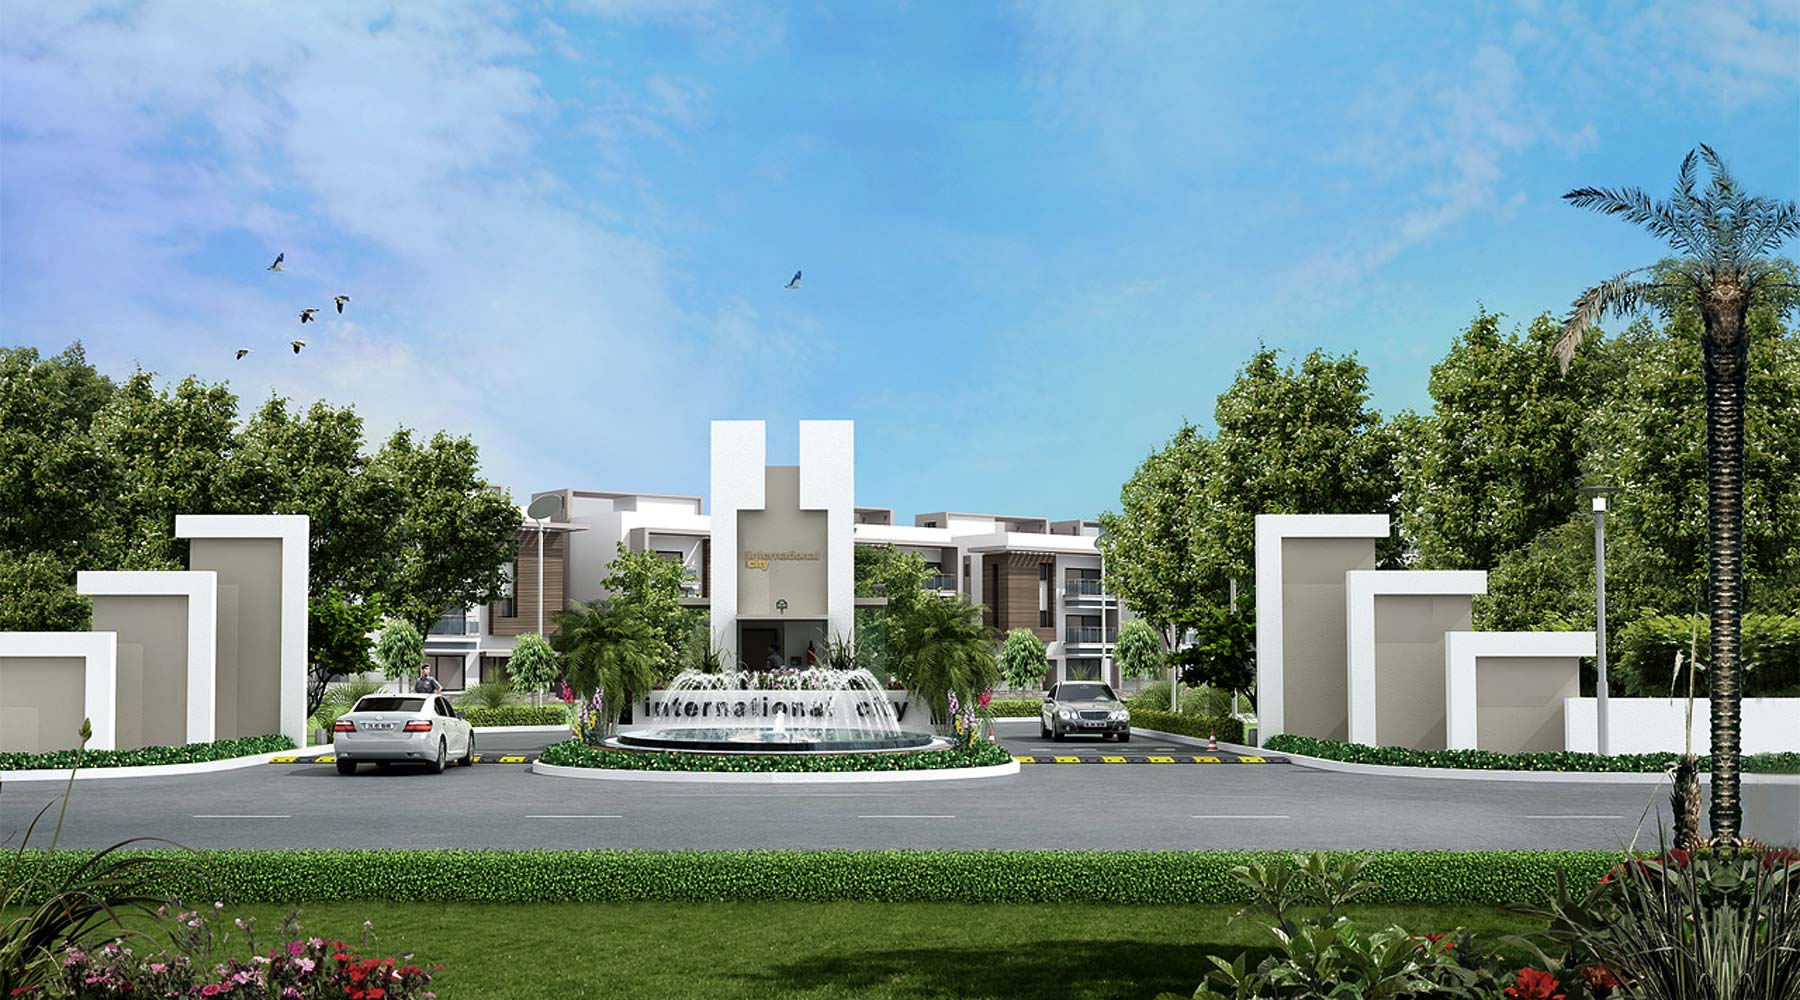 International CityGurgaon